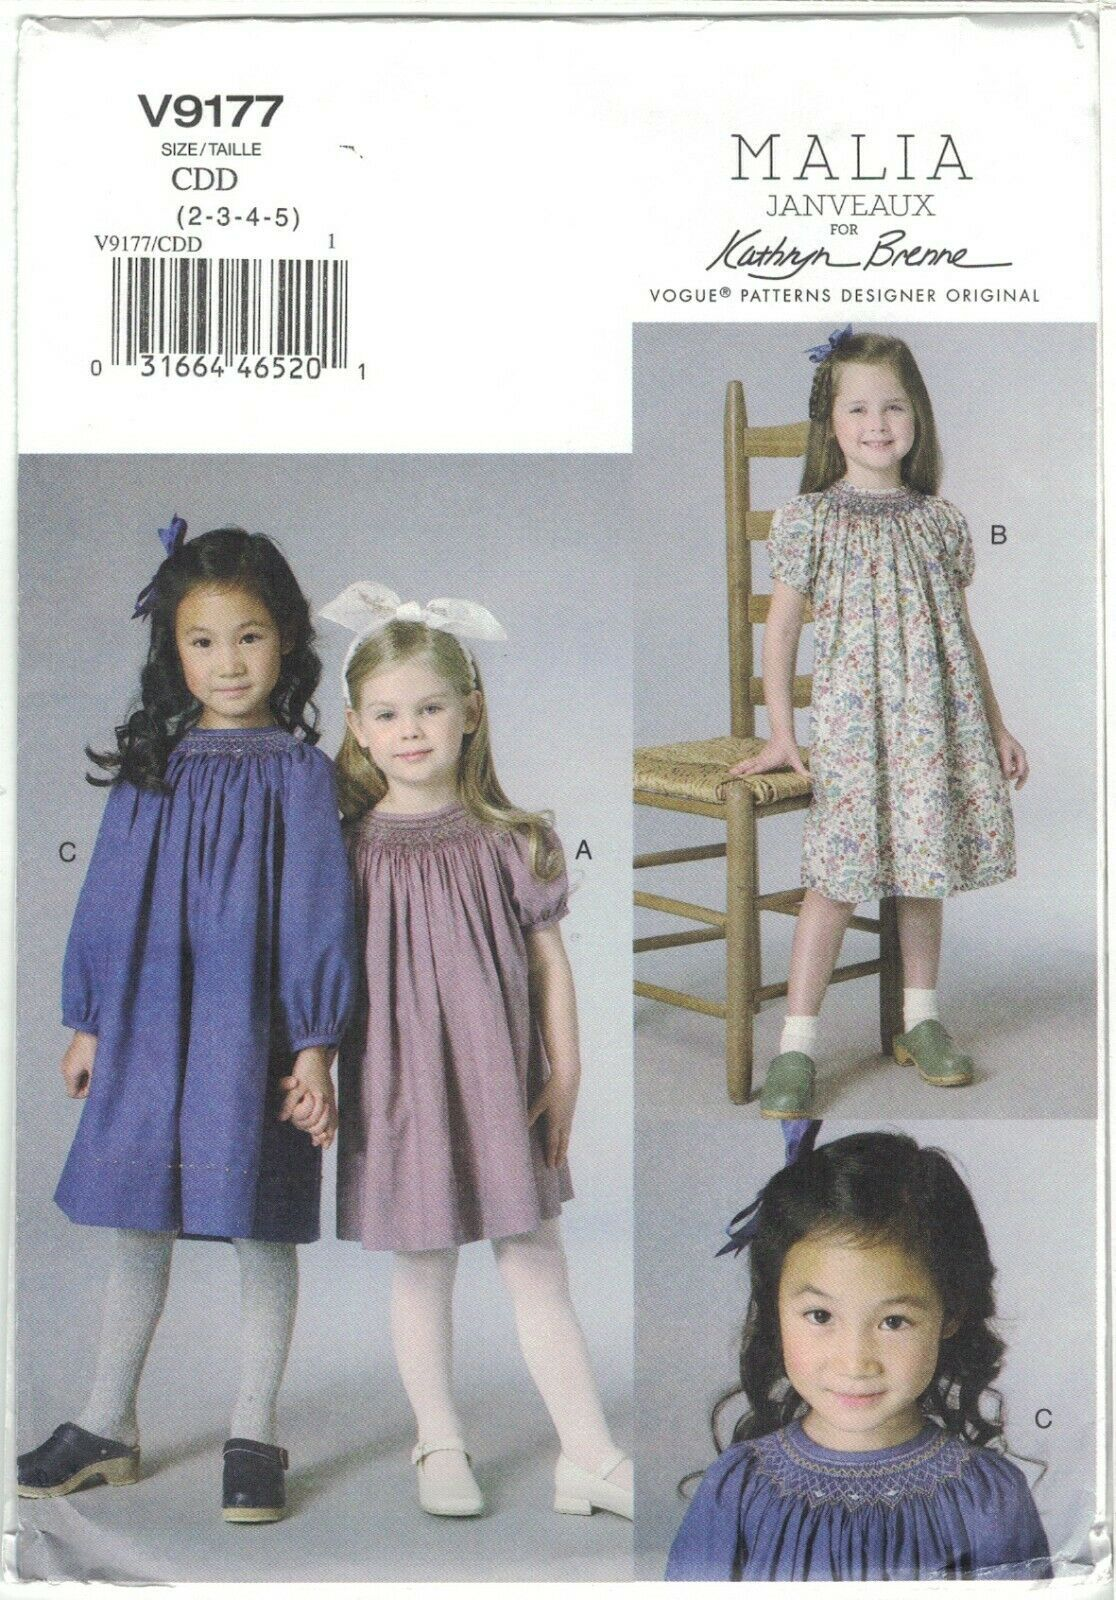 Primary image for Vogue 9177 Malia Janveaux x Kathryn Brenne Children's Girl's Dress Smocking UC